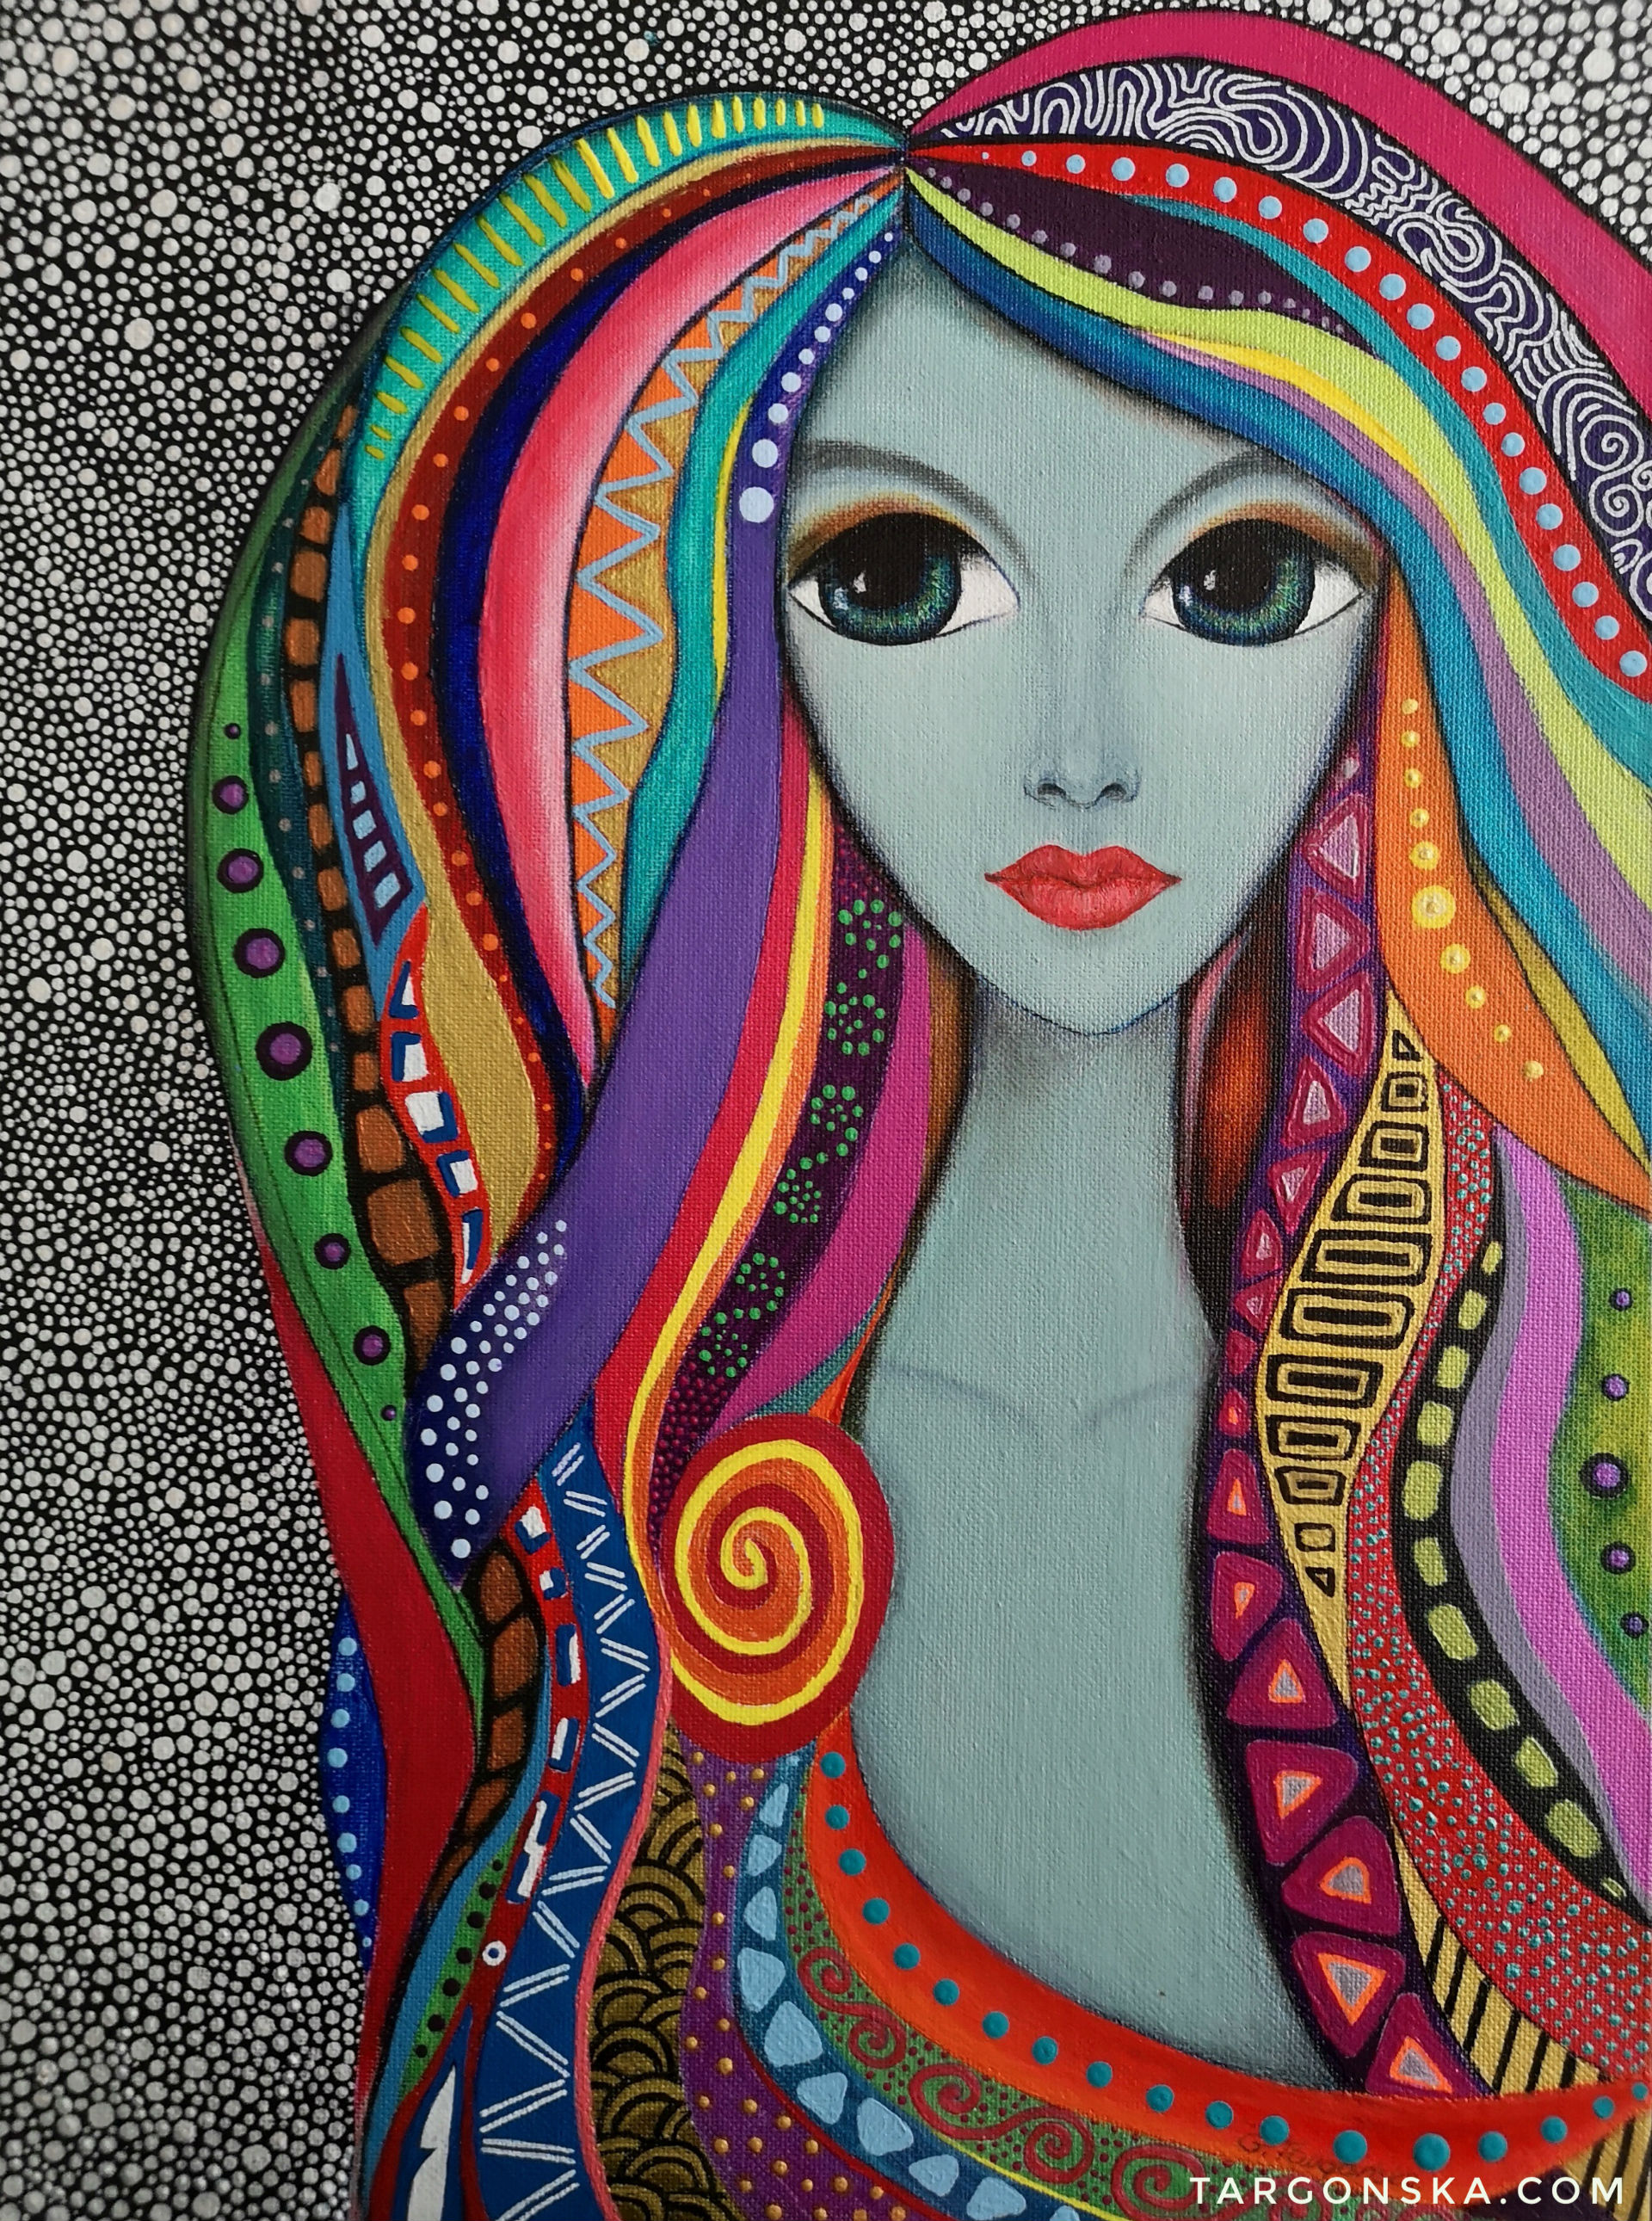 Colorful Lady Malgorzata Targonska